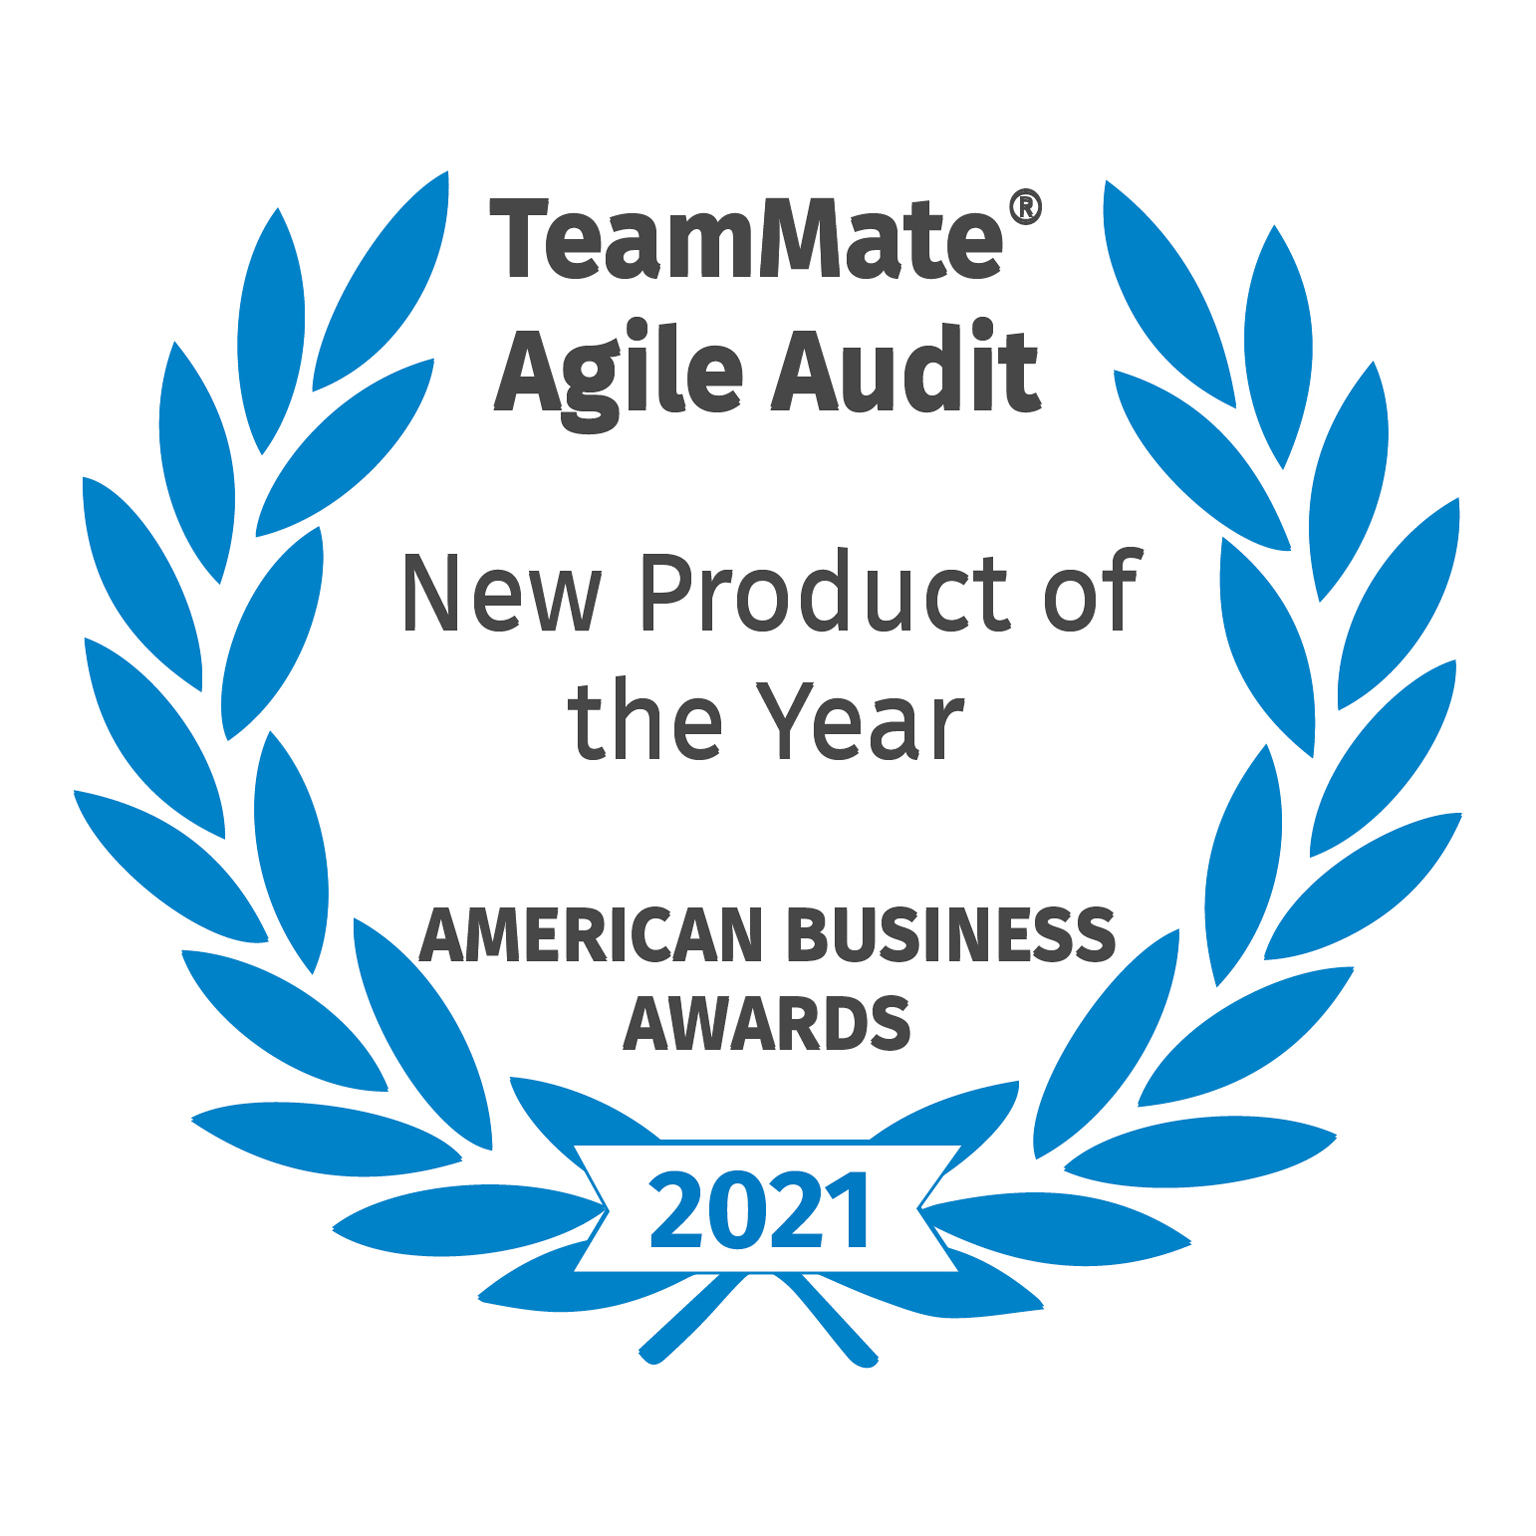 TeamMate Agile Audit - New Product of the Year - American Business Awards - 2021